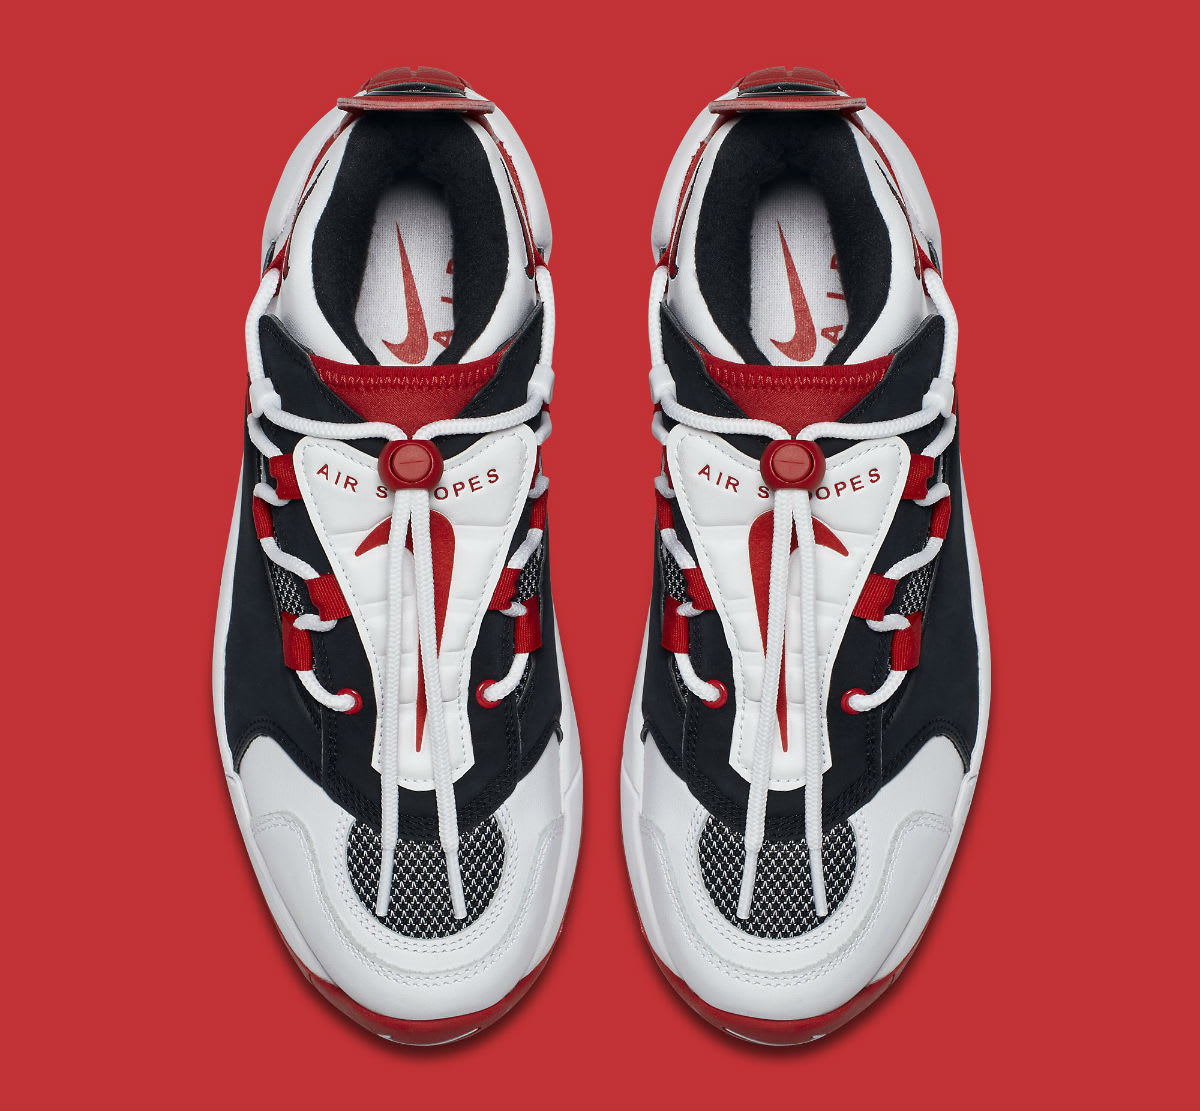 Nike Air Swoopes 2 II White Red Release Date 917592-100 Top